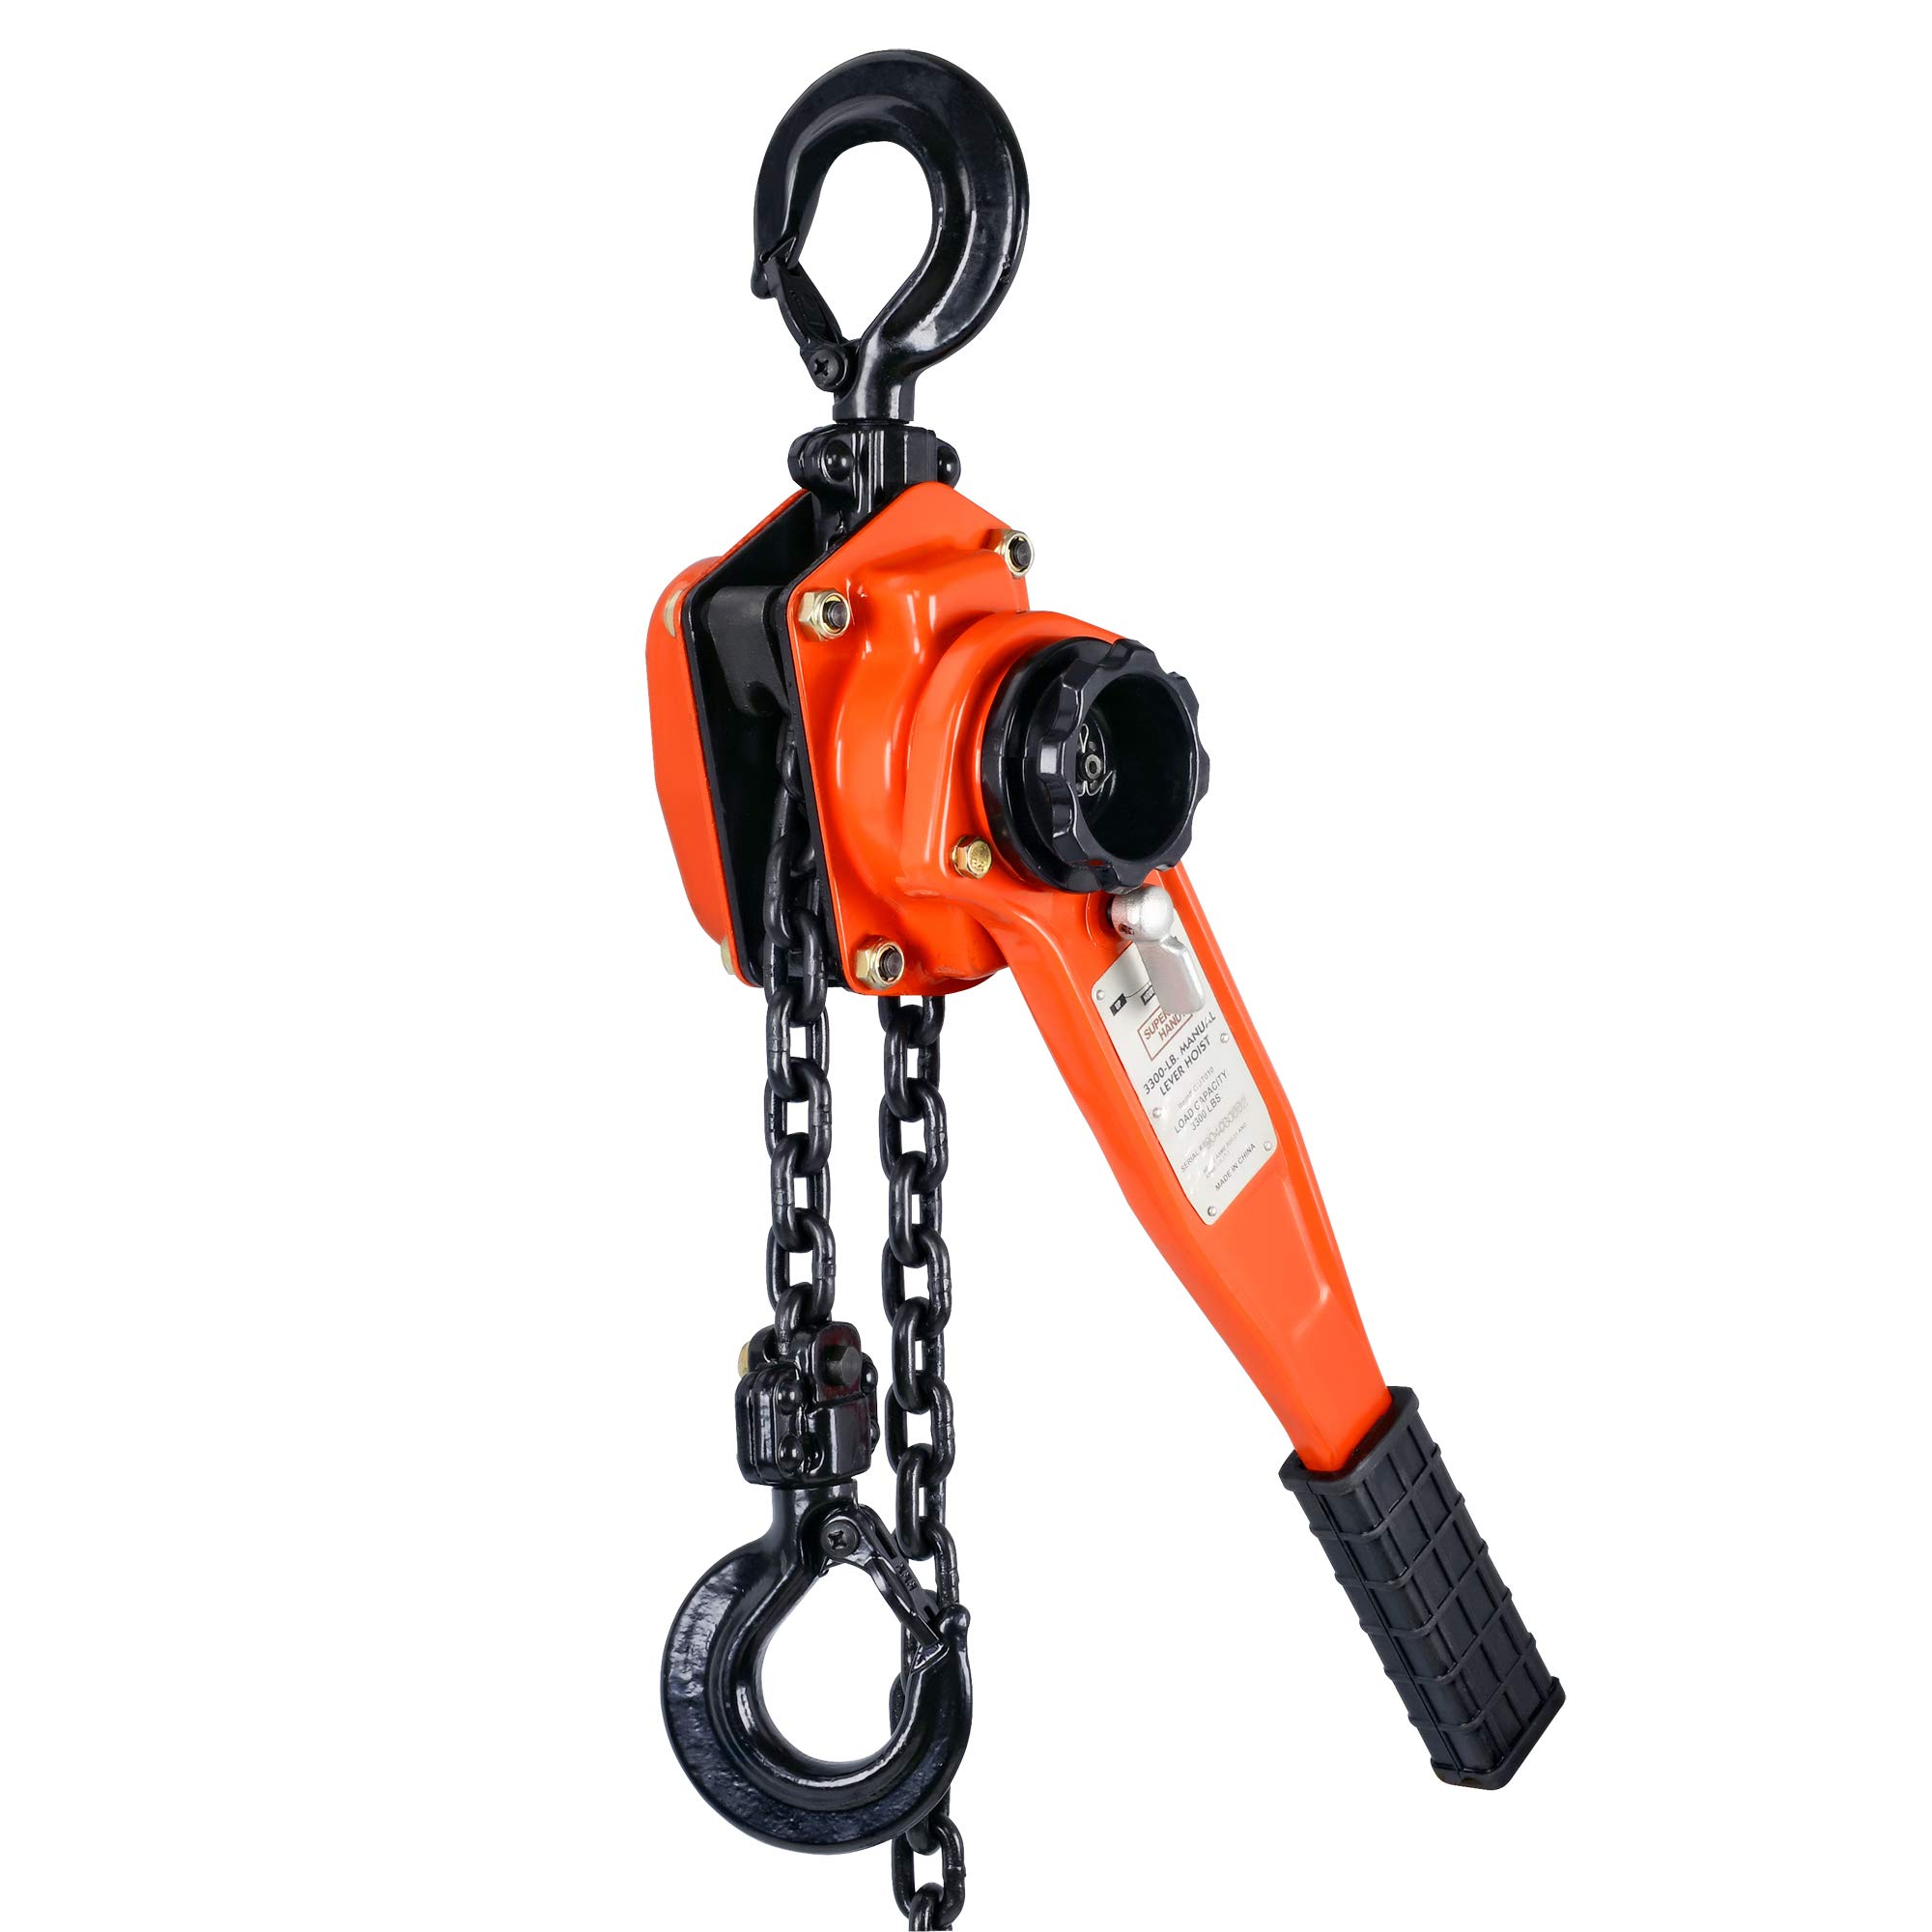 SuperHandy Manual Lever Hoist Come Along 1-½ TON 3300 LBS Capacity 5FT Lift 2 Heavy Duty Hooks Commercial Grade Steel for Lifting Pulling Construction Building Garages Warehouse Automotive Machinery